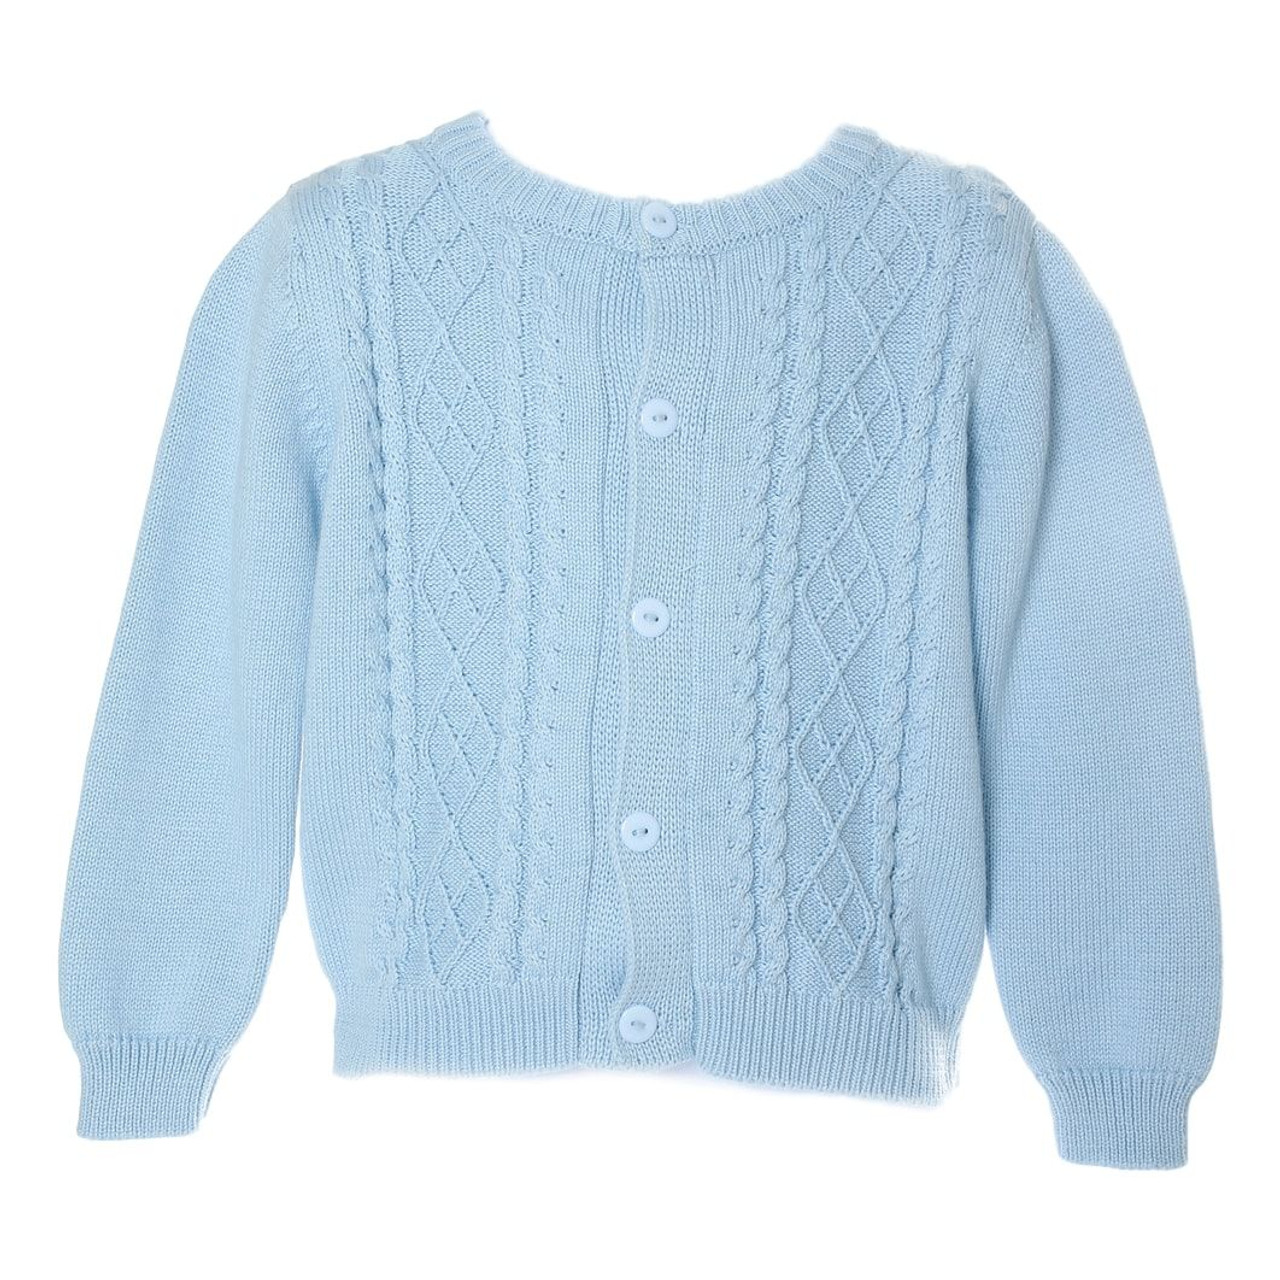 Blue Cable Knit Sweater - Smocked Threads by Cecil & Lou